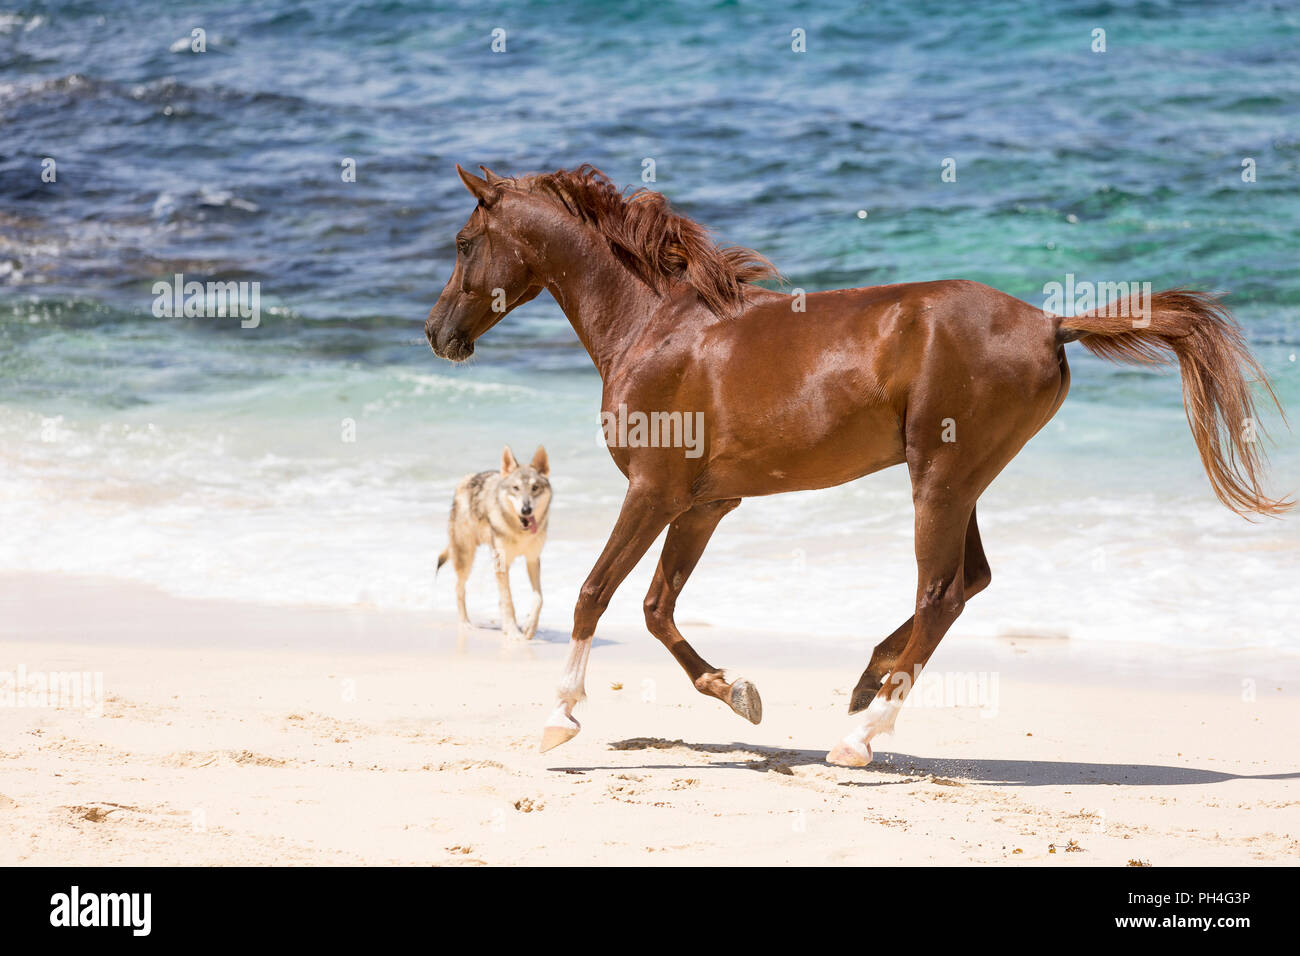 Arabian horse. Chestnut gelding galloping on a tropical beach, watched by Tamaskan dog. Seychelles - Stock Image